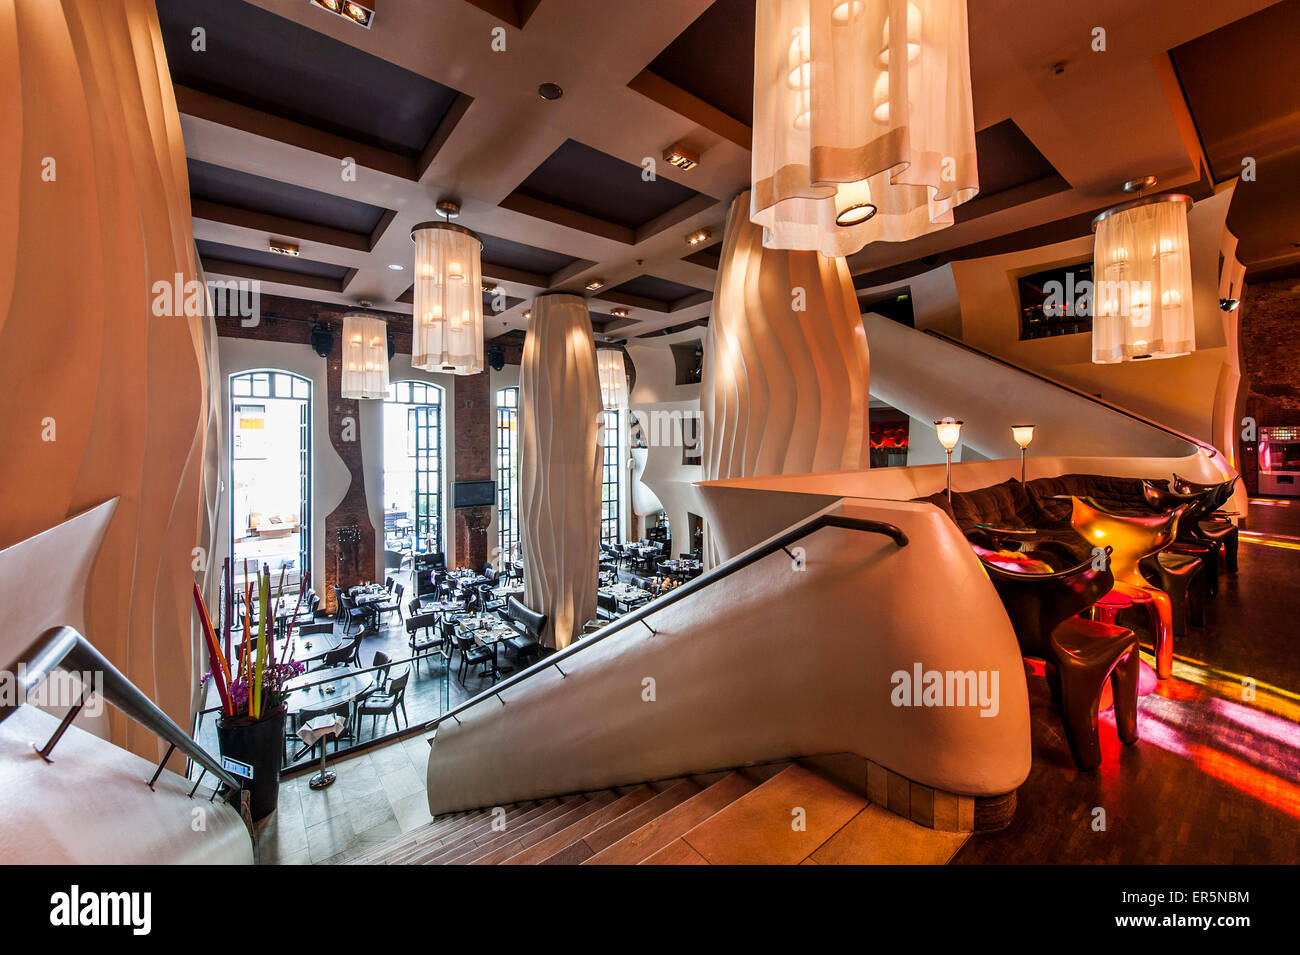 East Hotel Hamburg Restaurant Of The East Hotel, At St. Pauli Hamburg, Hamburg, Germany Stock Photo - Alamy